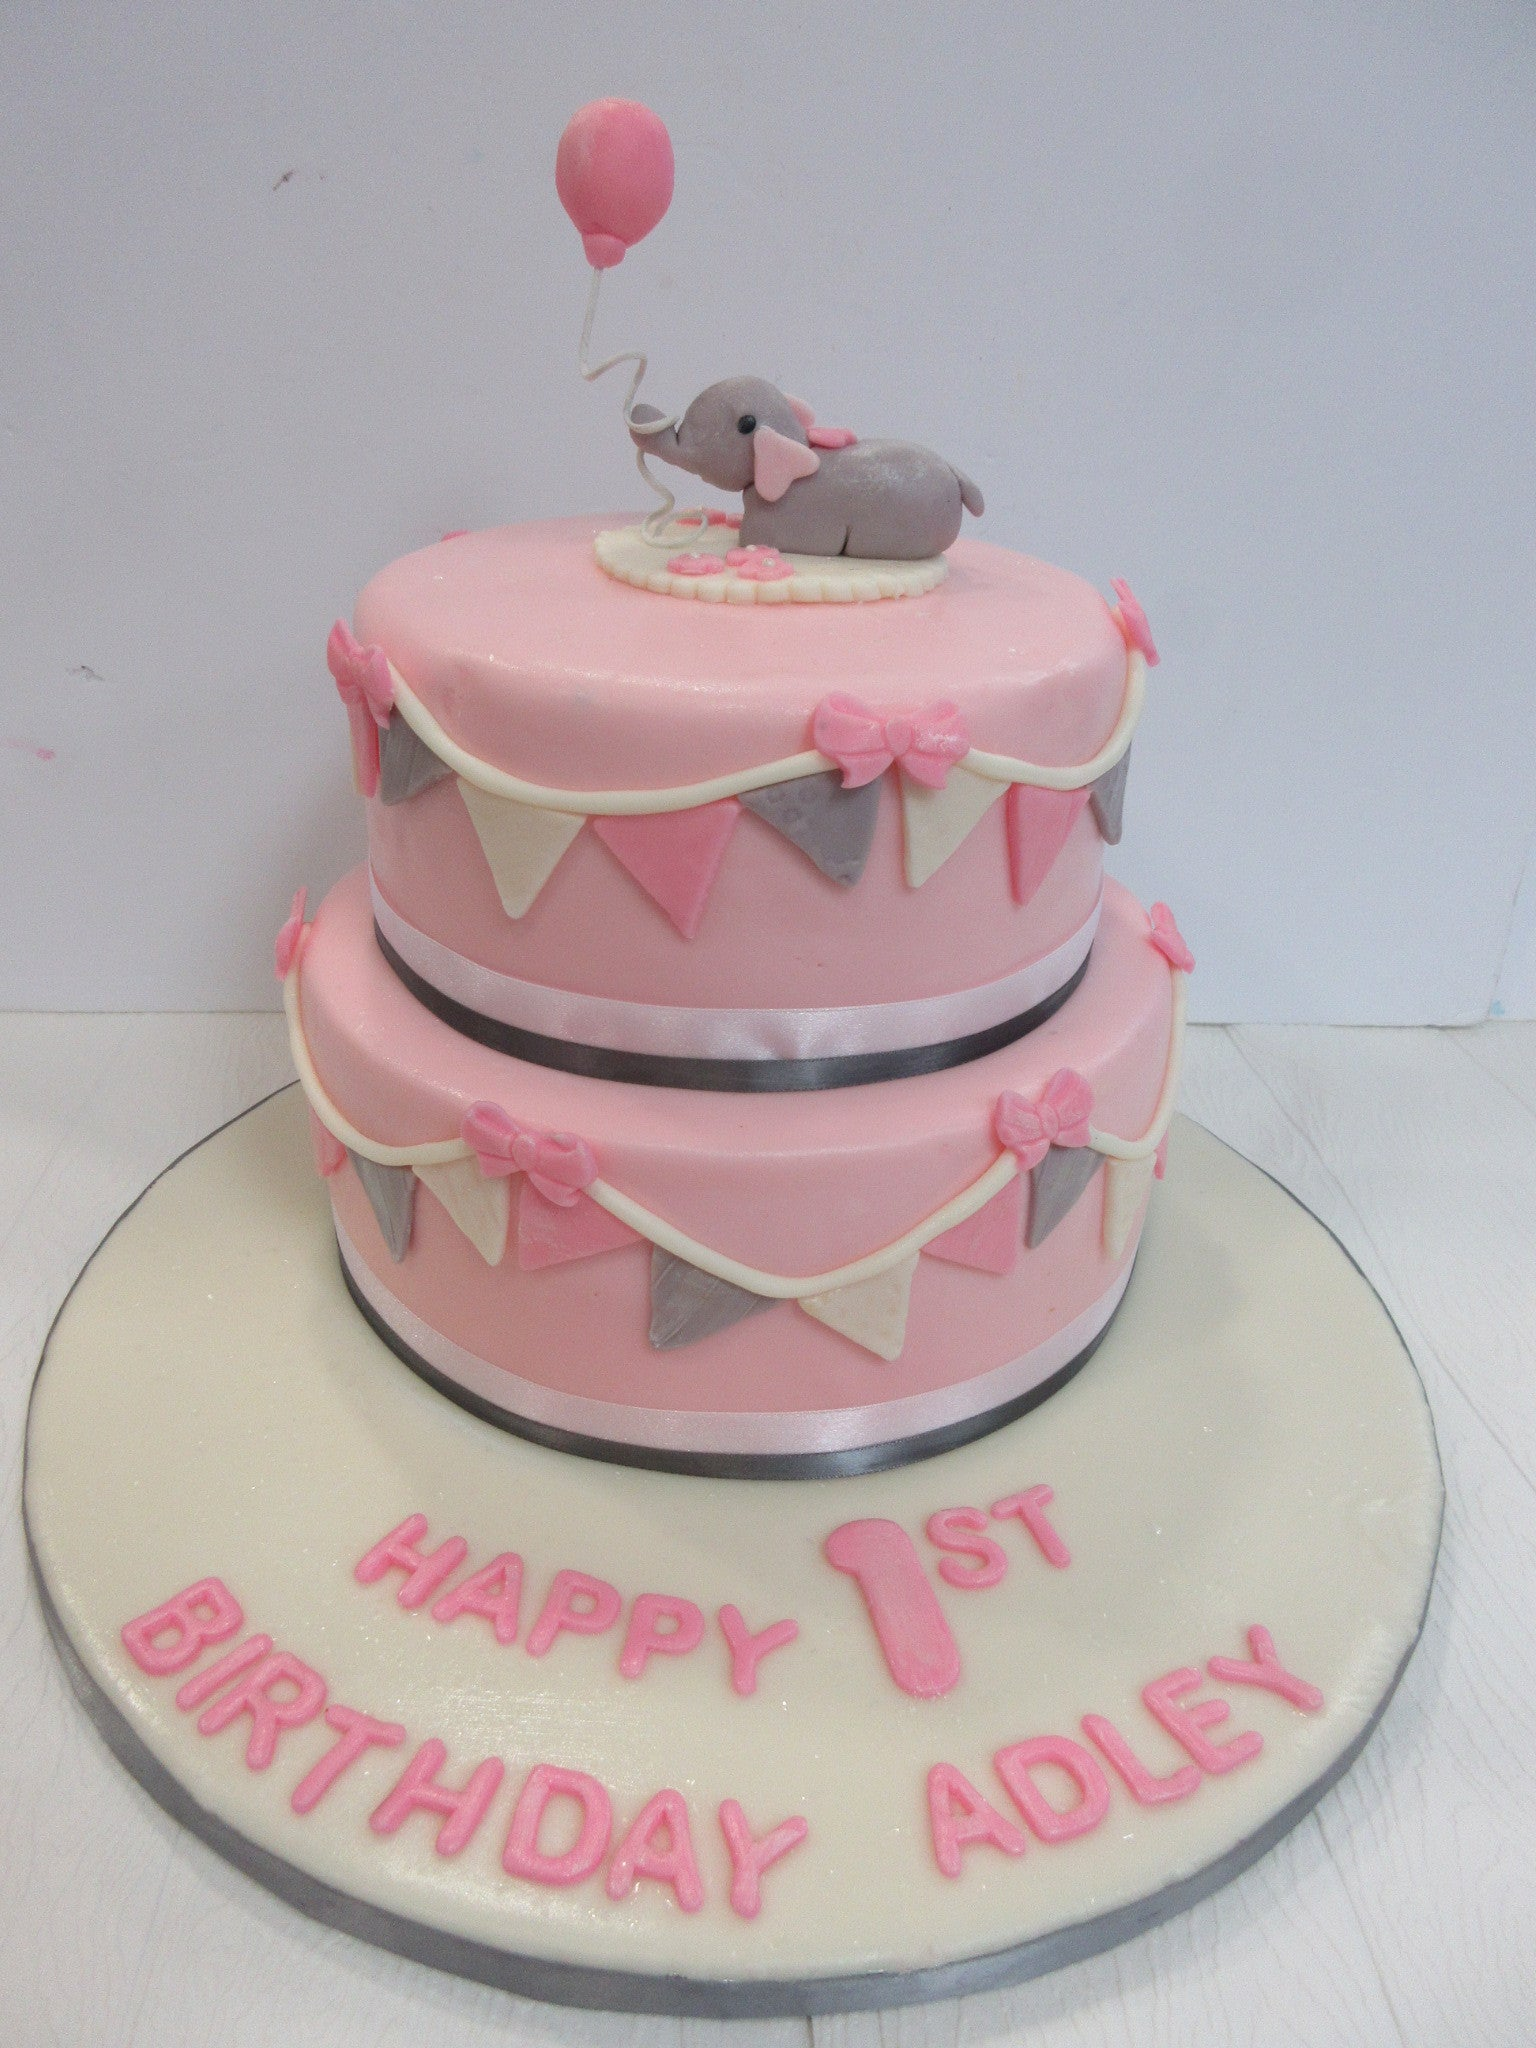 2-tier Fondant Covered First Birthday